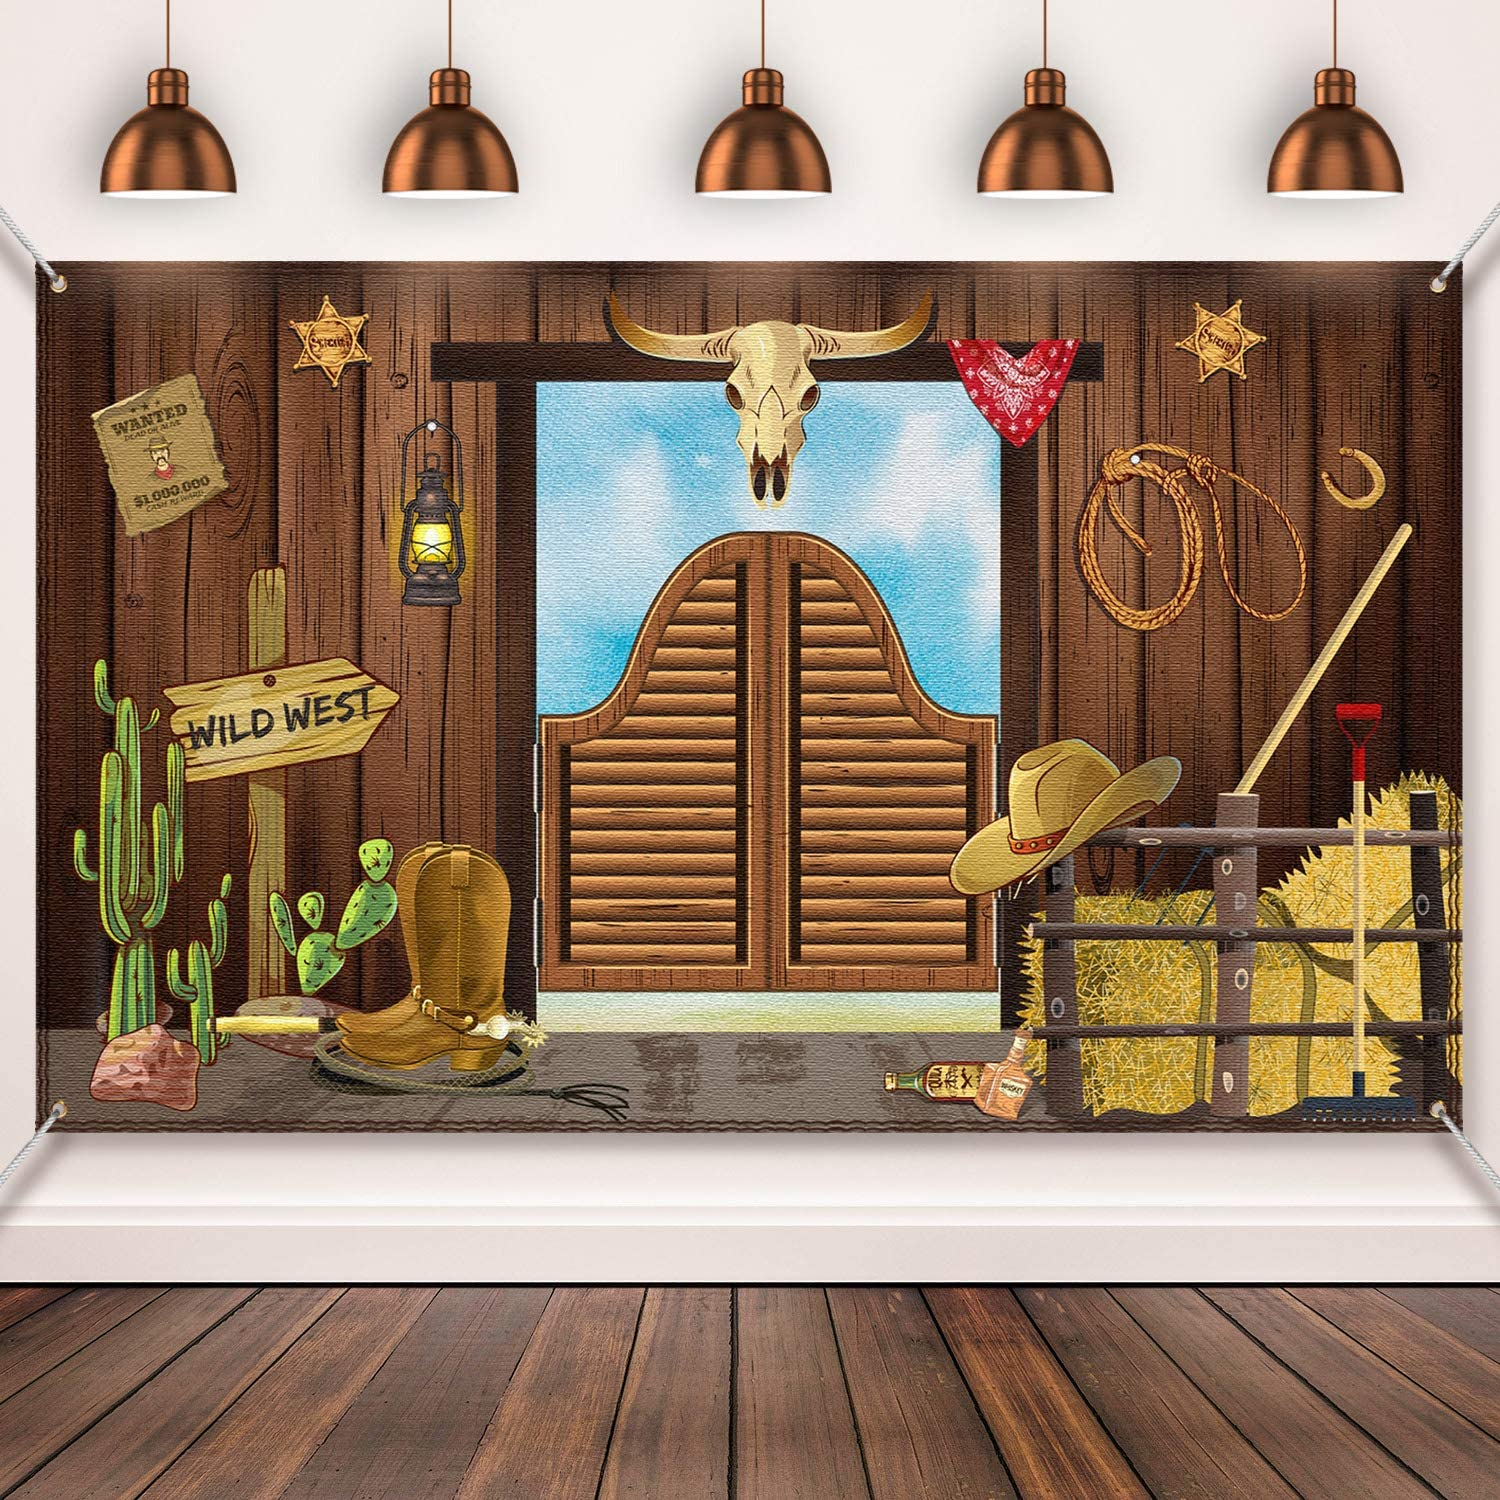 Western Party Supplies, Large Fabric Saloon Yeehaw Western Scene Setters for Western Themed , Wooden House Barn Banner Cowboy Decoration Photo Booth Backdrop Background (Wild West)